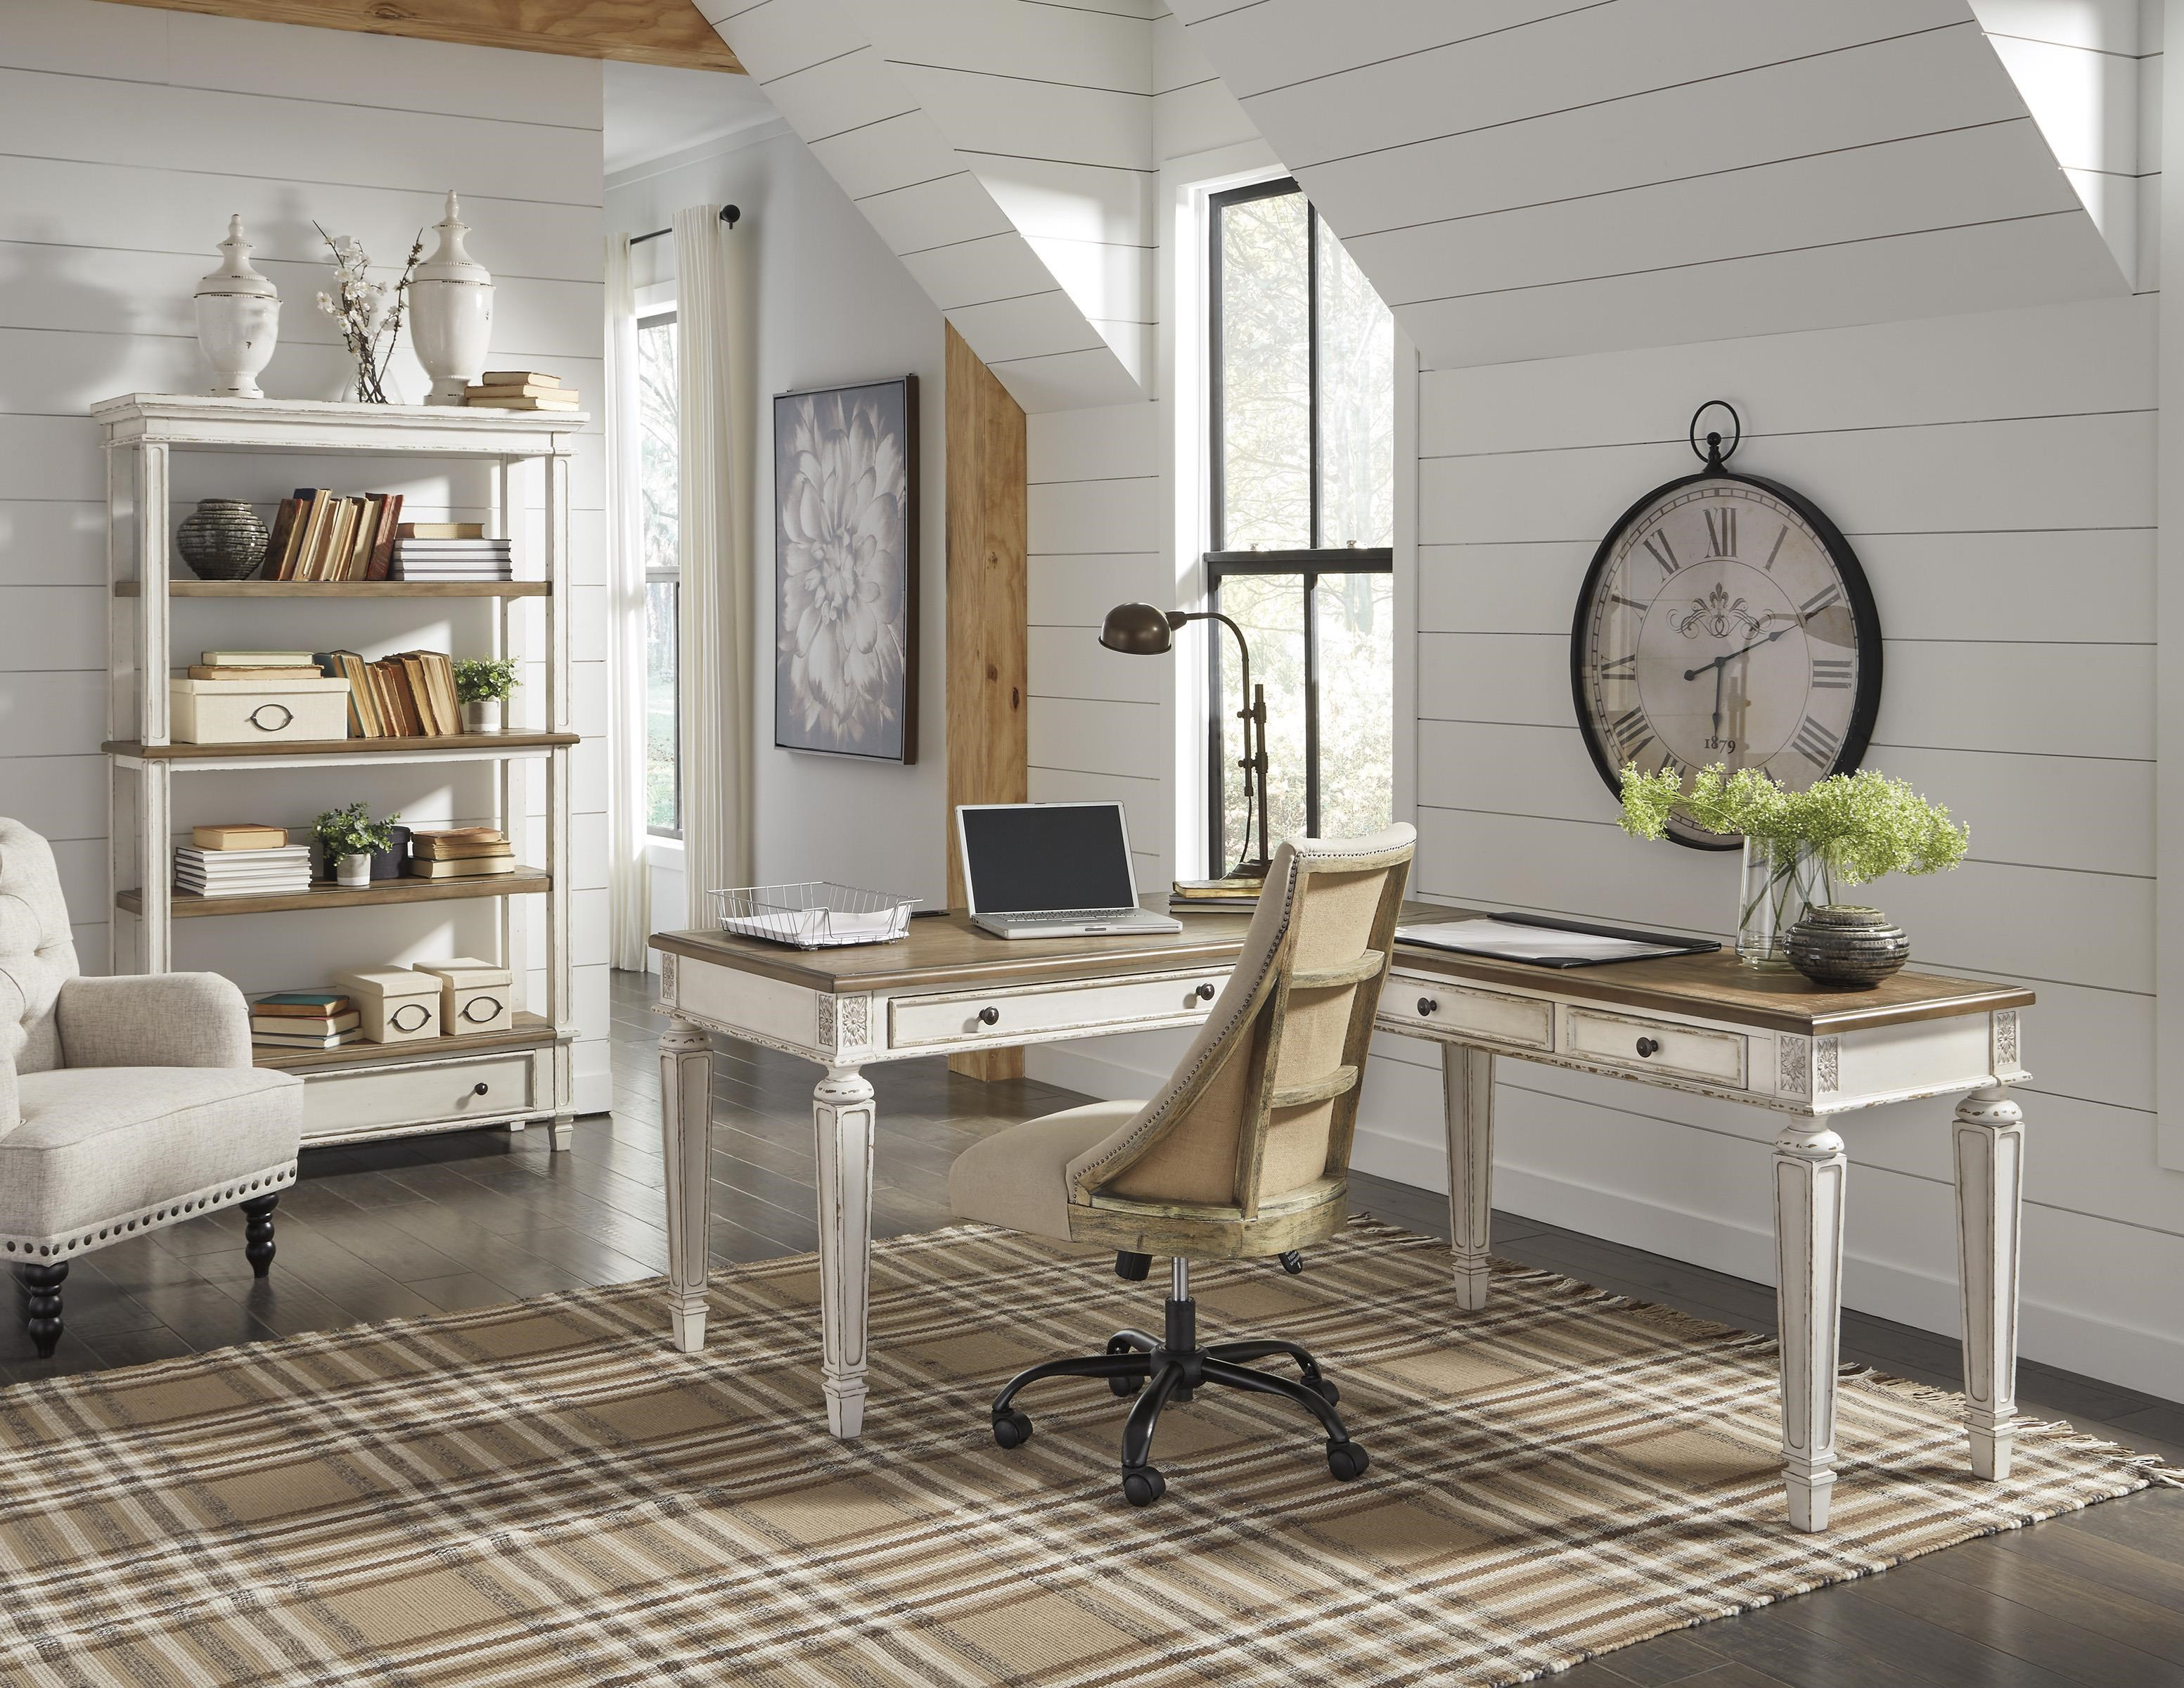 Home Office Desk and Return, Office Chair an